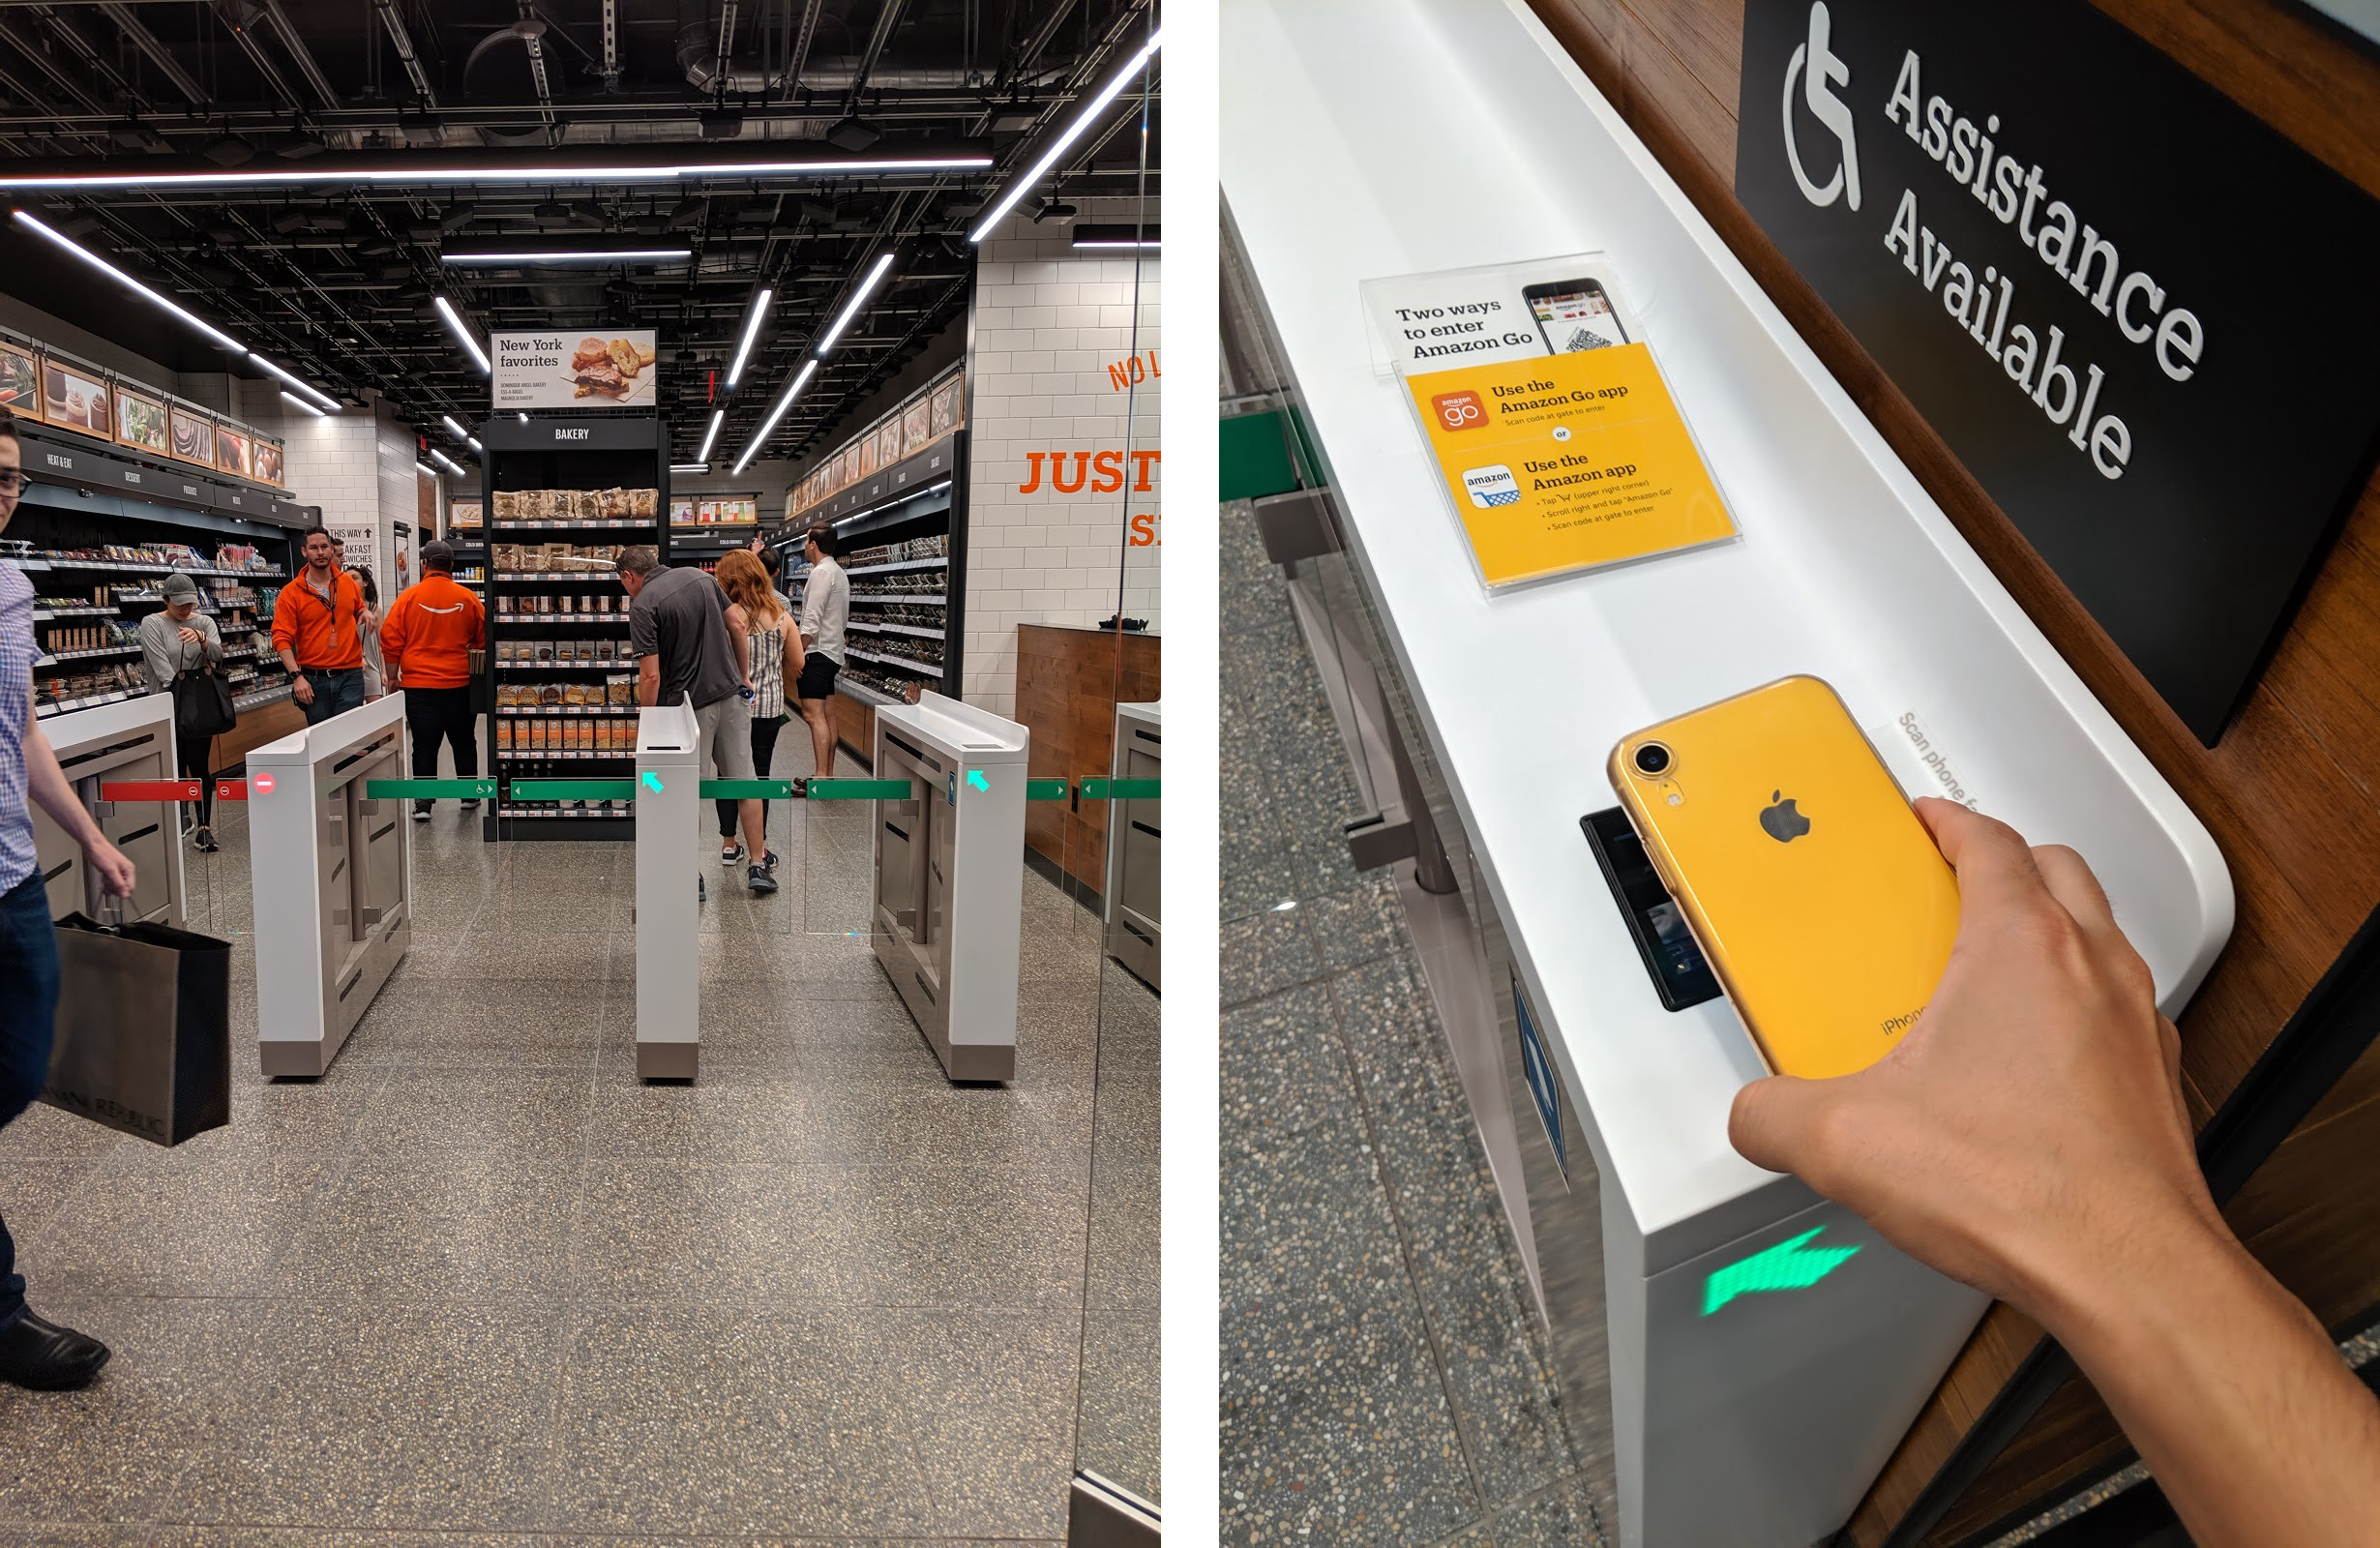 Just Walk Out Amazon Go The Most Convincing Future Of Retail